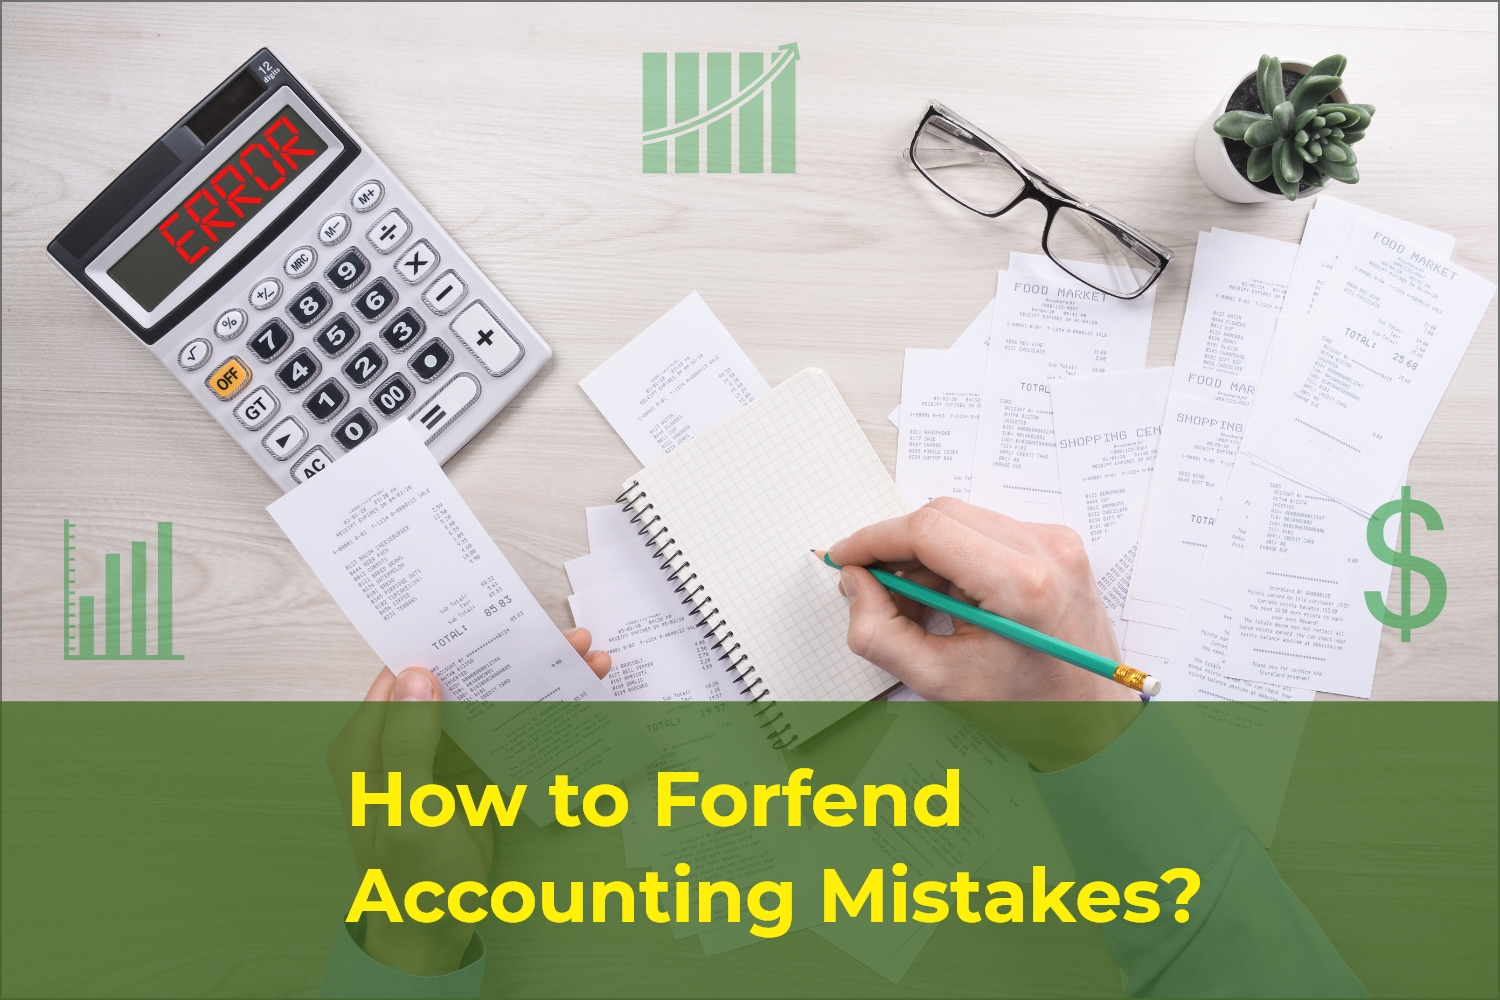 How to Forfend Accounting Mistakes